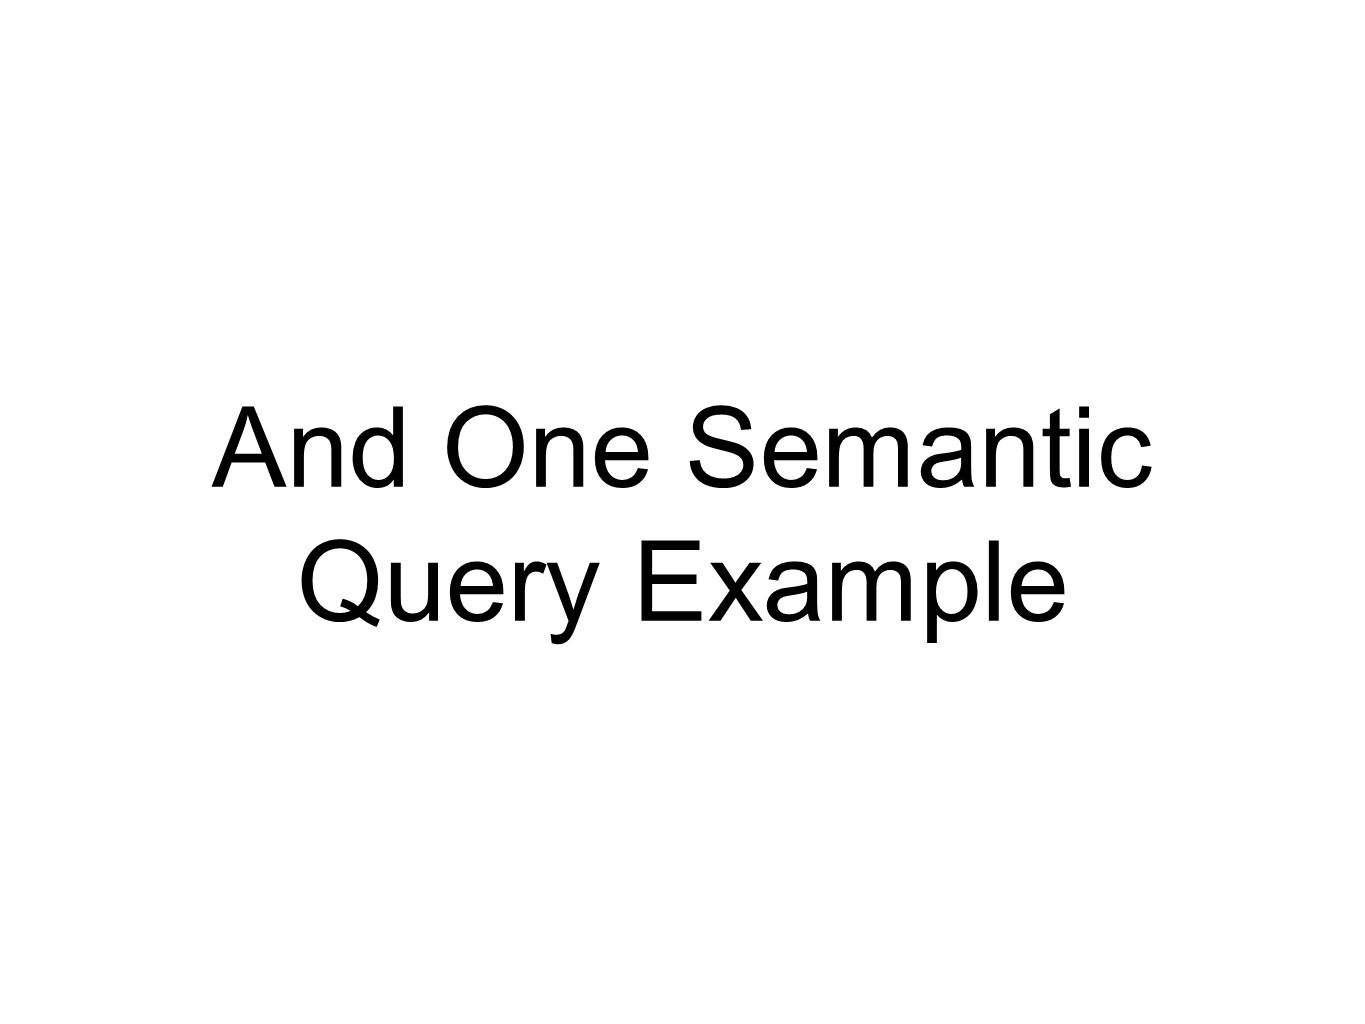 And One Semantic Query Example